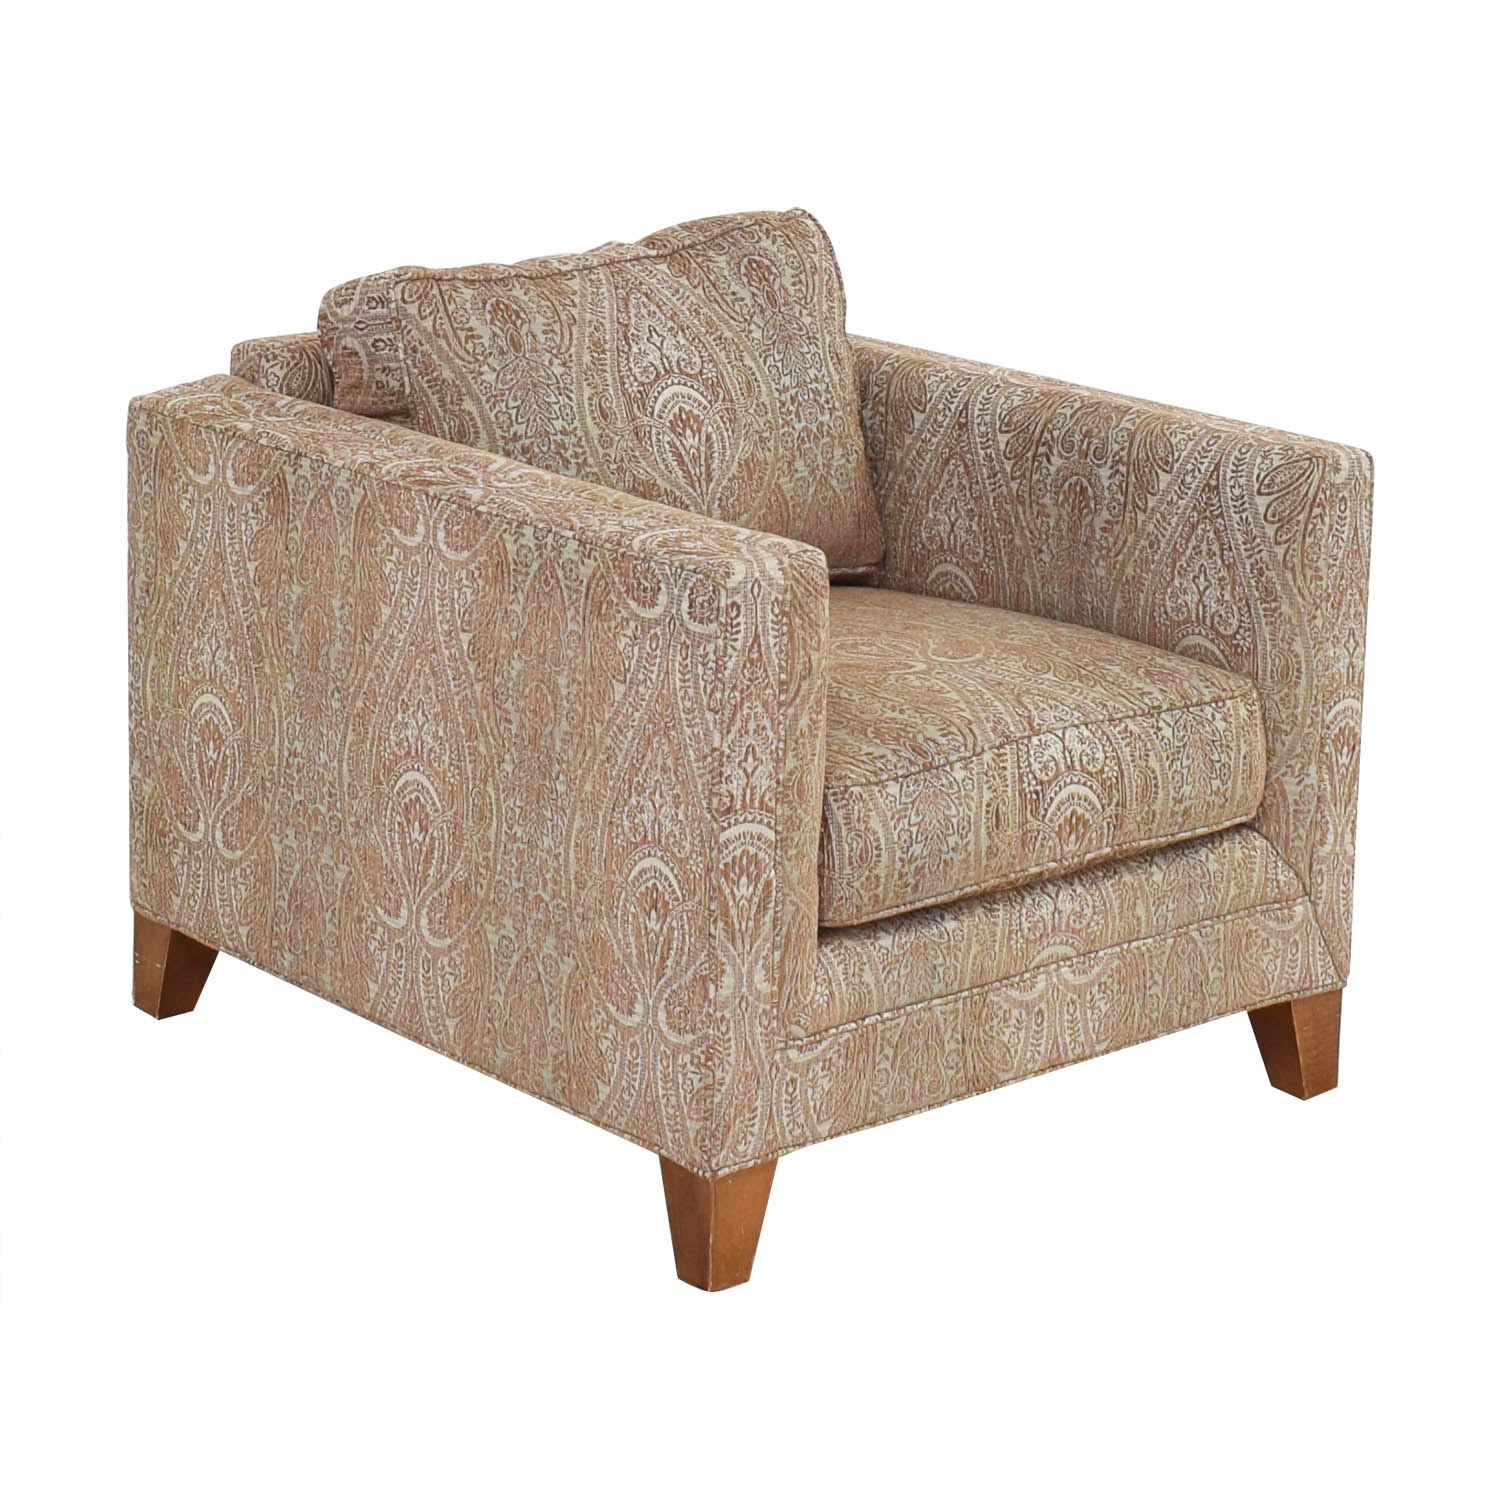 Crate & Barrel Crate & Barrel by Mitchell Gold + Bob Williams Paisley Print Club Chair Accent Chairs